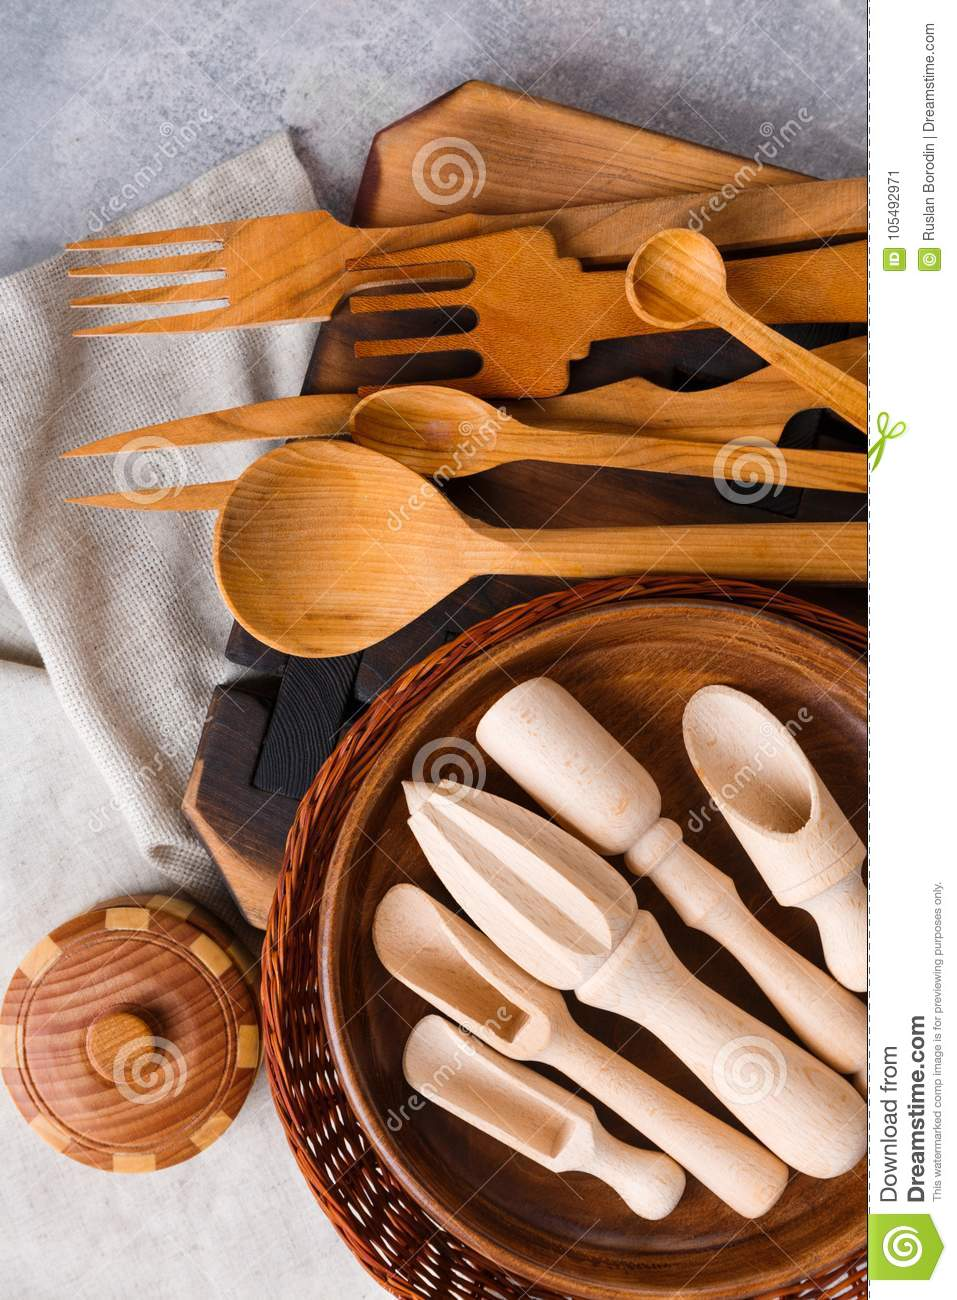 A large set of different kitchen devices are made of wood view from above